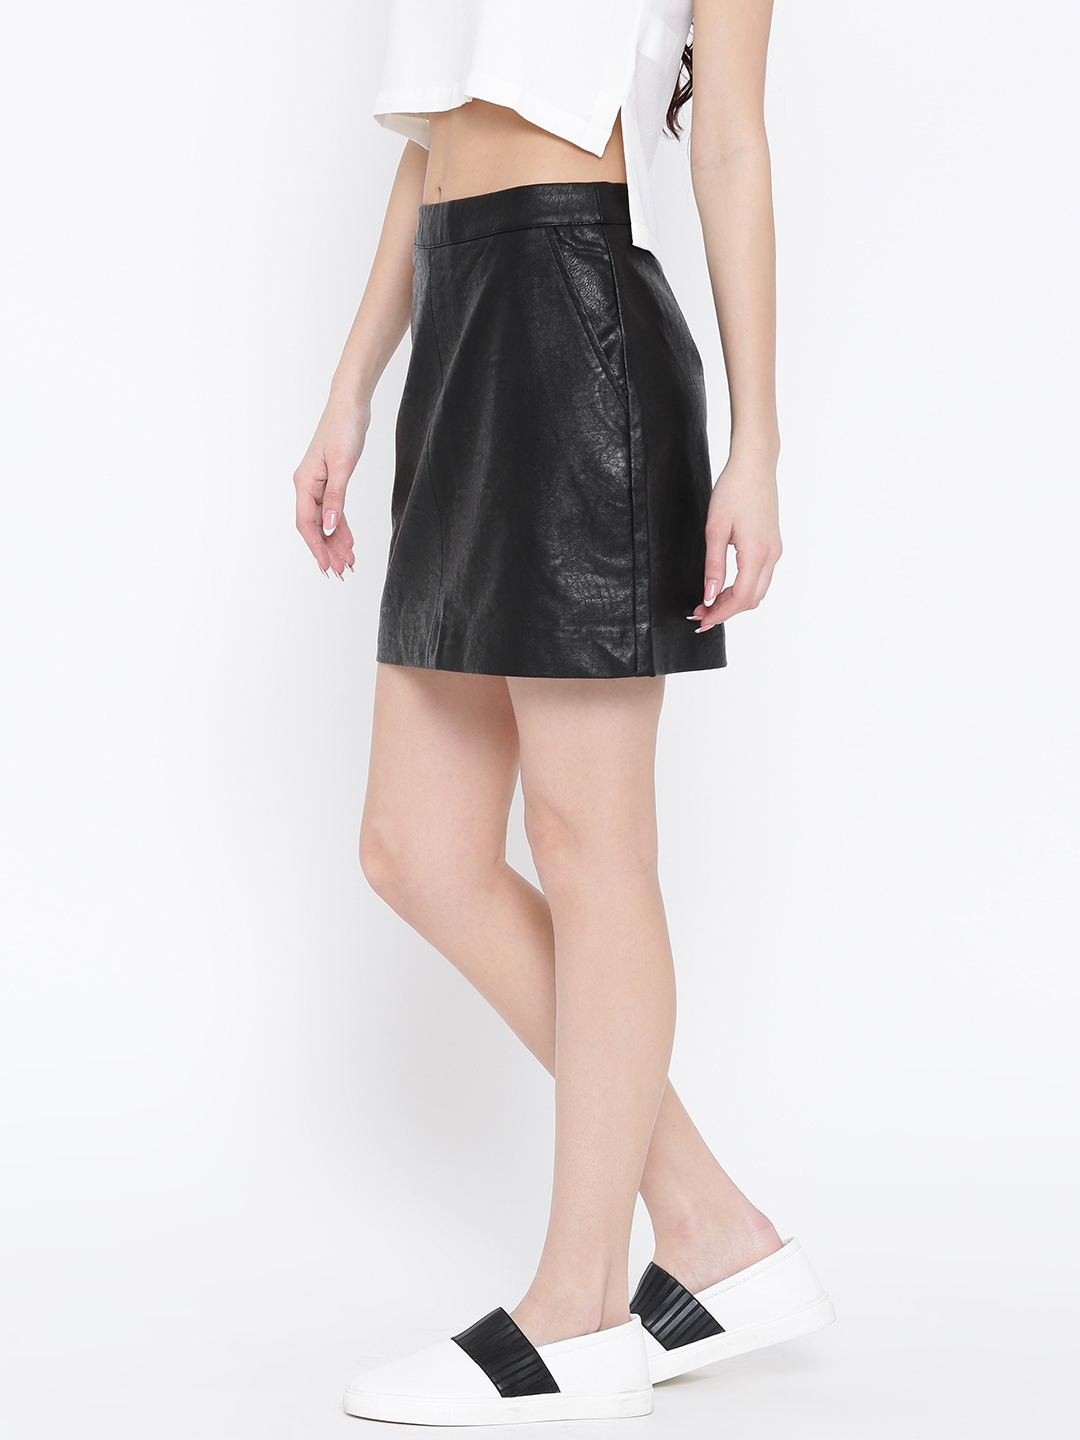 ab84e05082 Buy FOREVER 21 Black Faux Leather Mini A Line Skirt - Skirts for ...